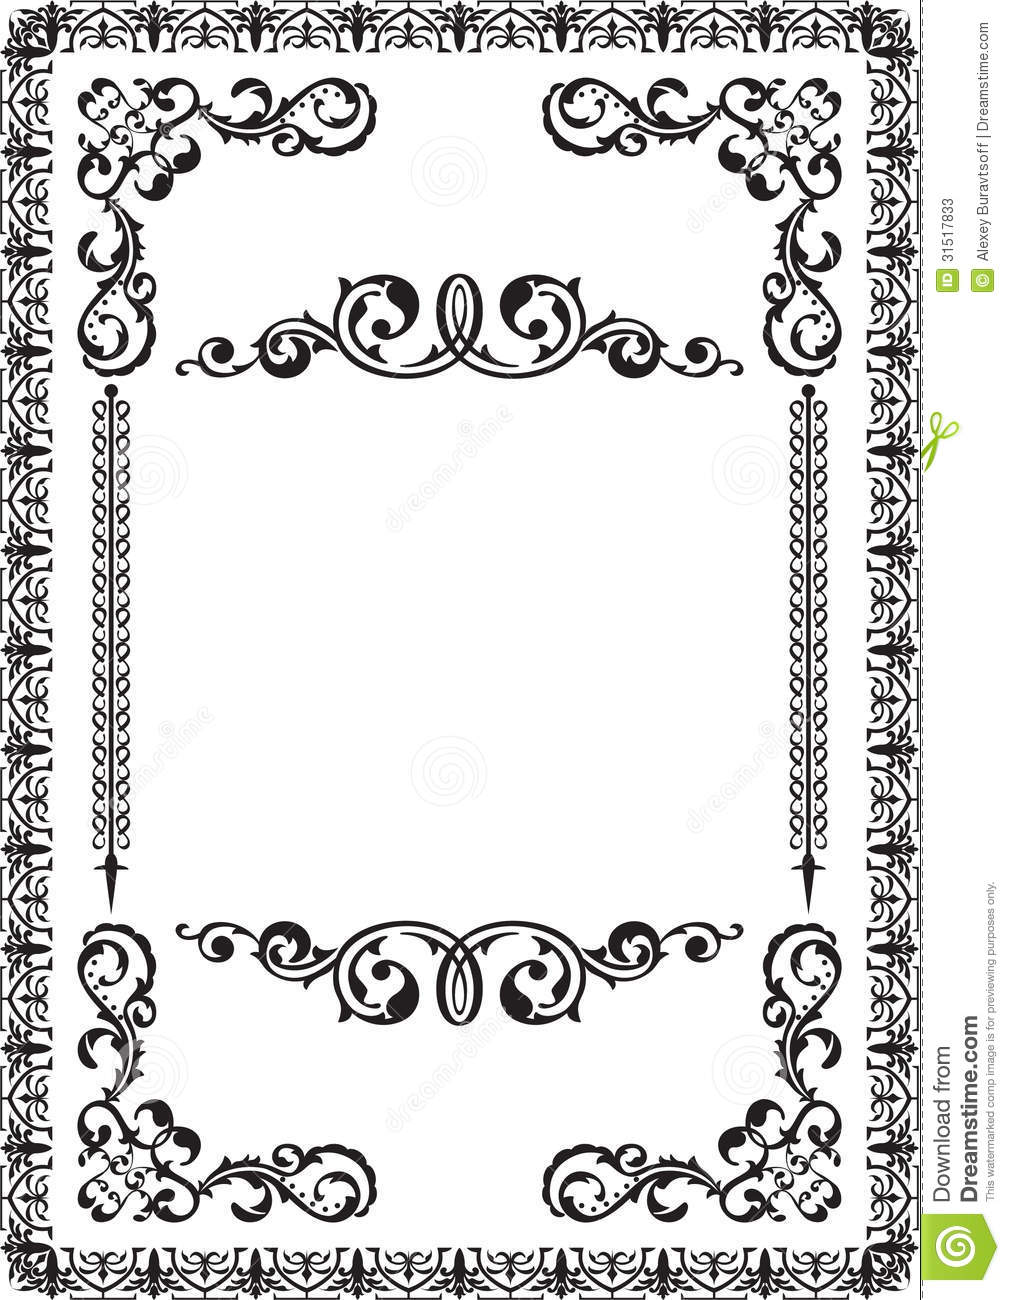 Classicall nice frame stock vector. Illustration of curve - 31517833